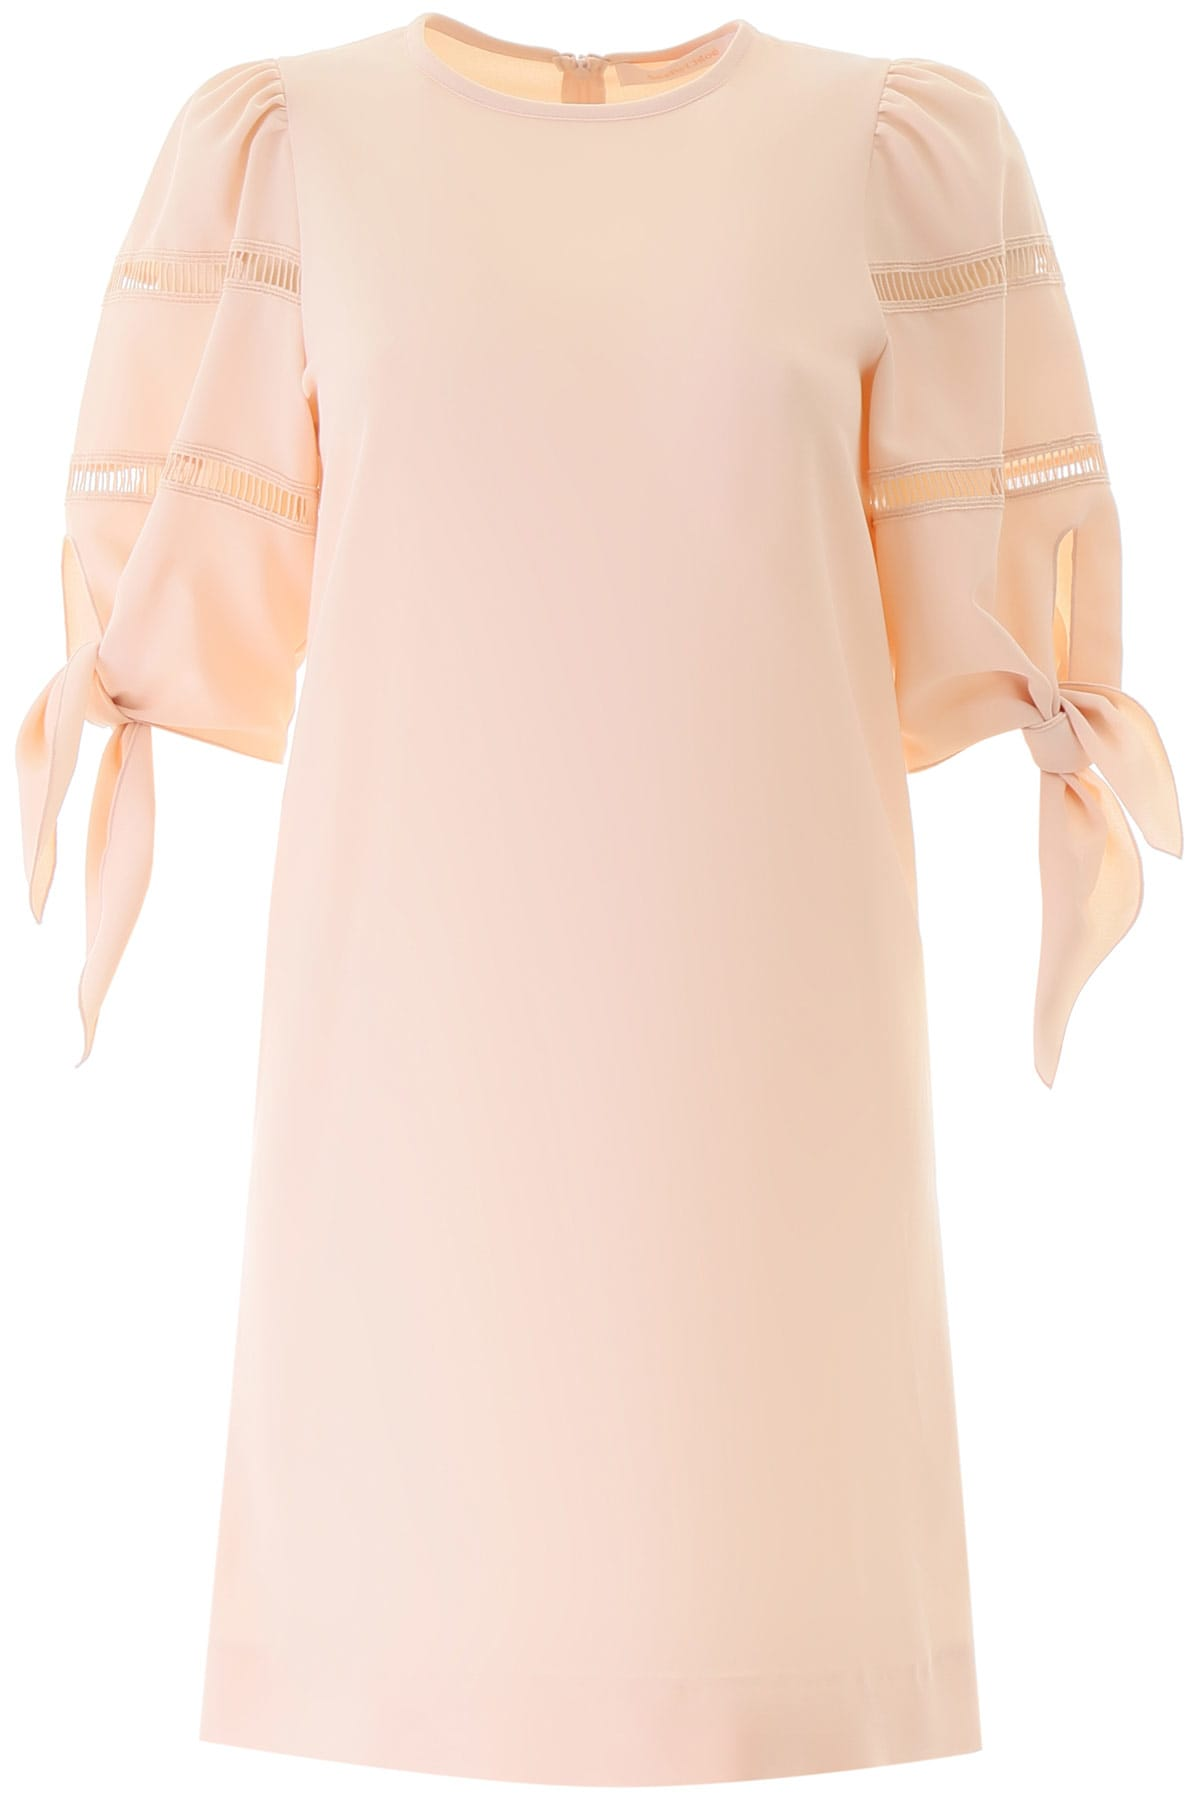 Buy See by Chloé Dress With Knots online, shop See by Chloé with free shipping